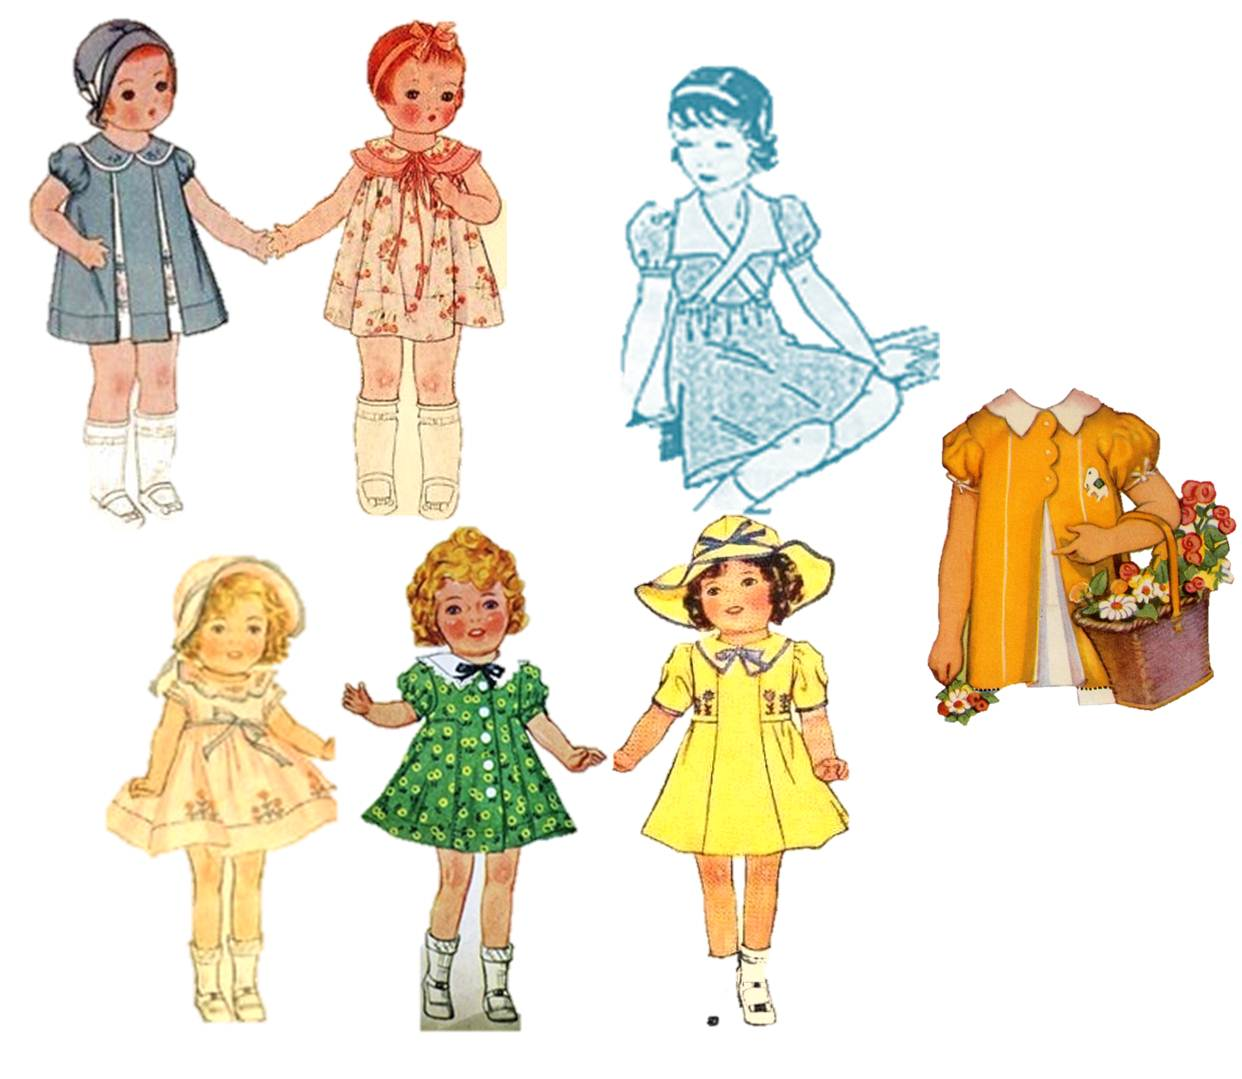 free doll sewing pattern | Wren*Feathers | Page 3